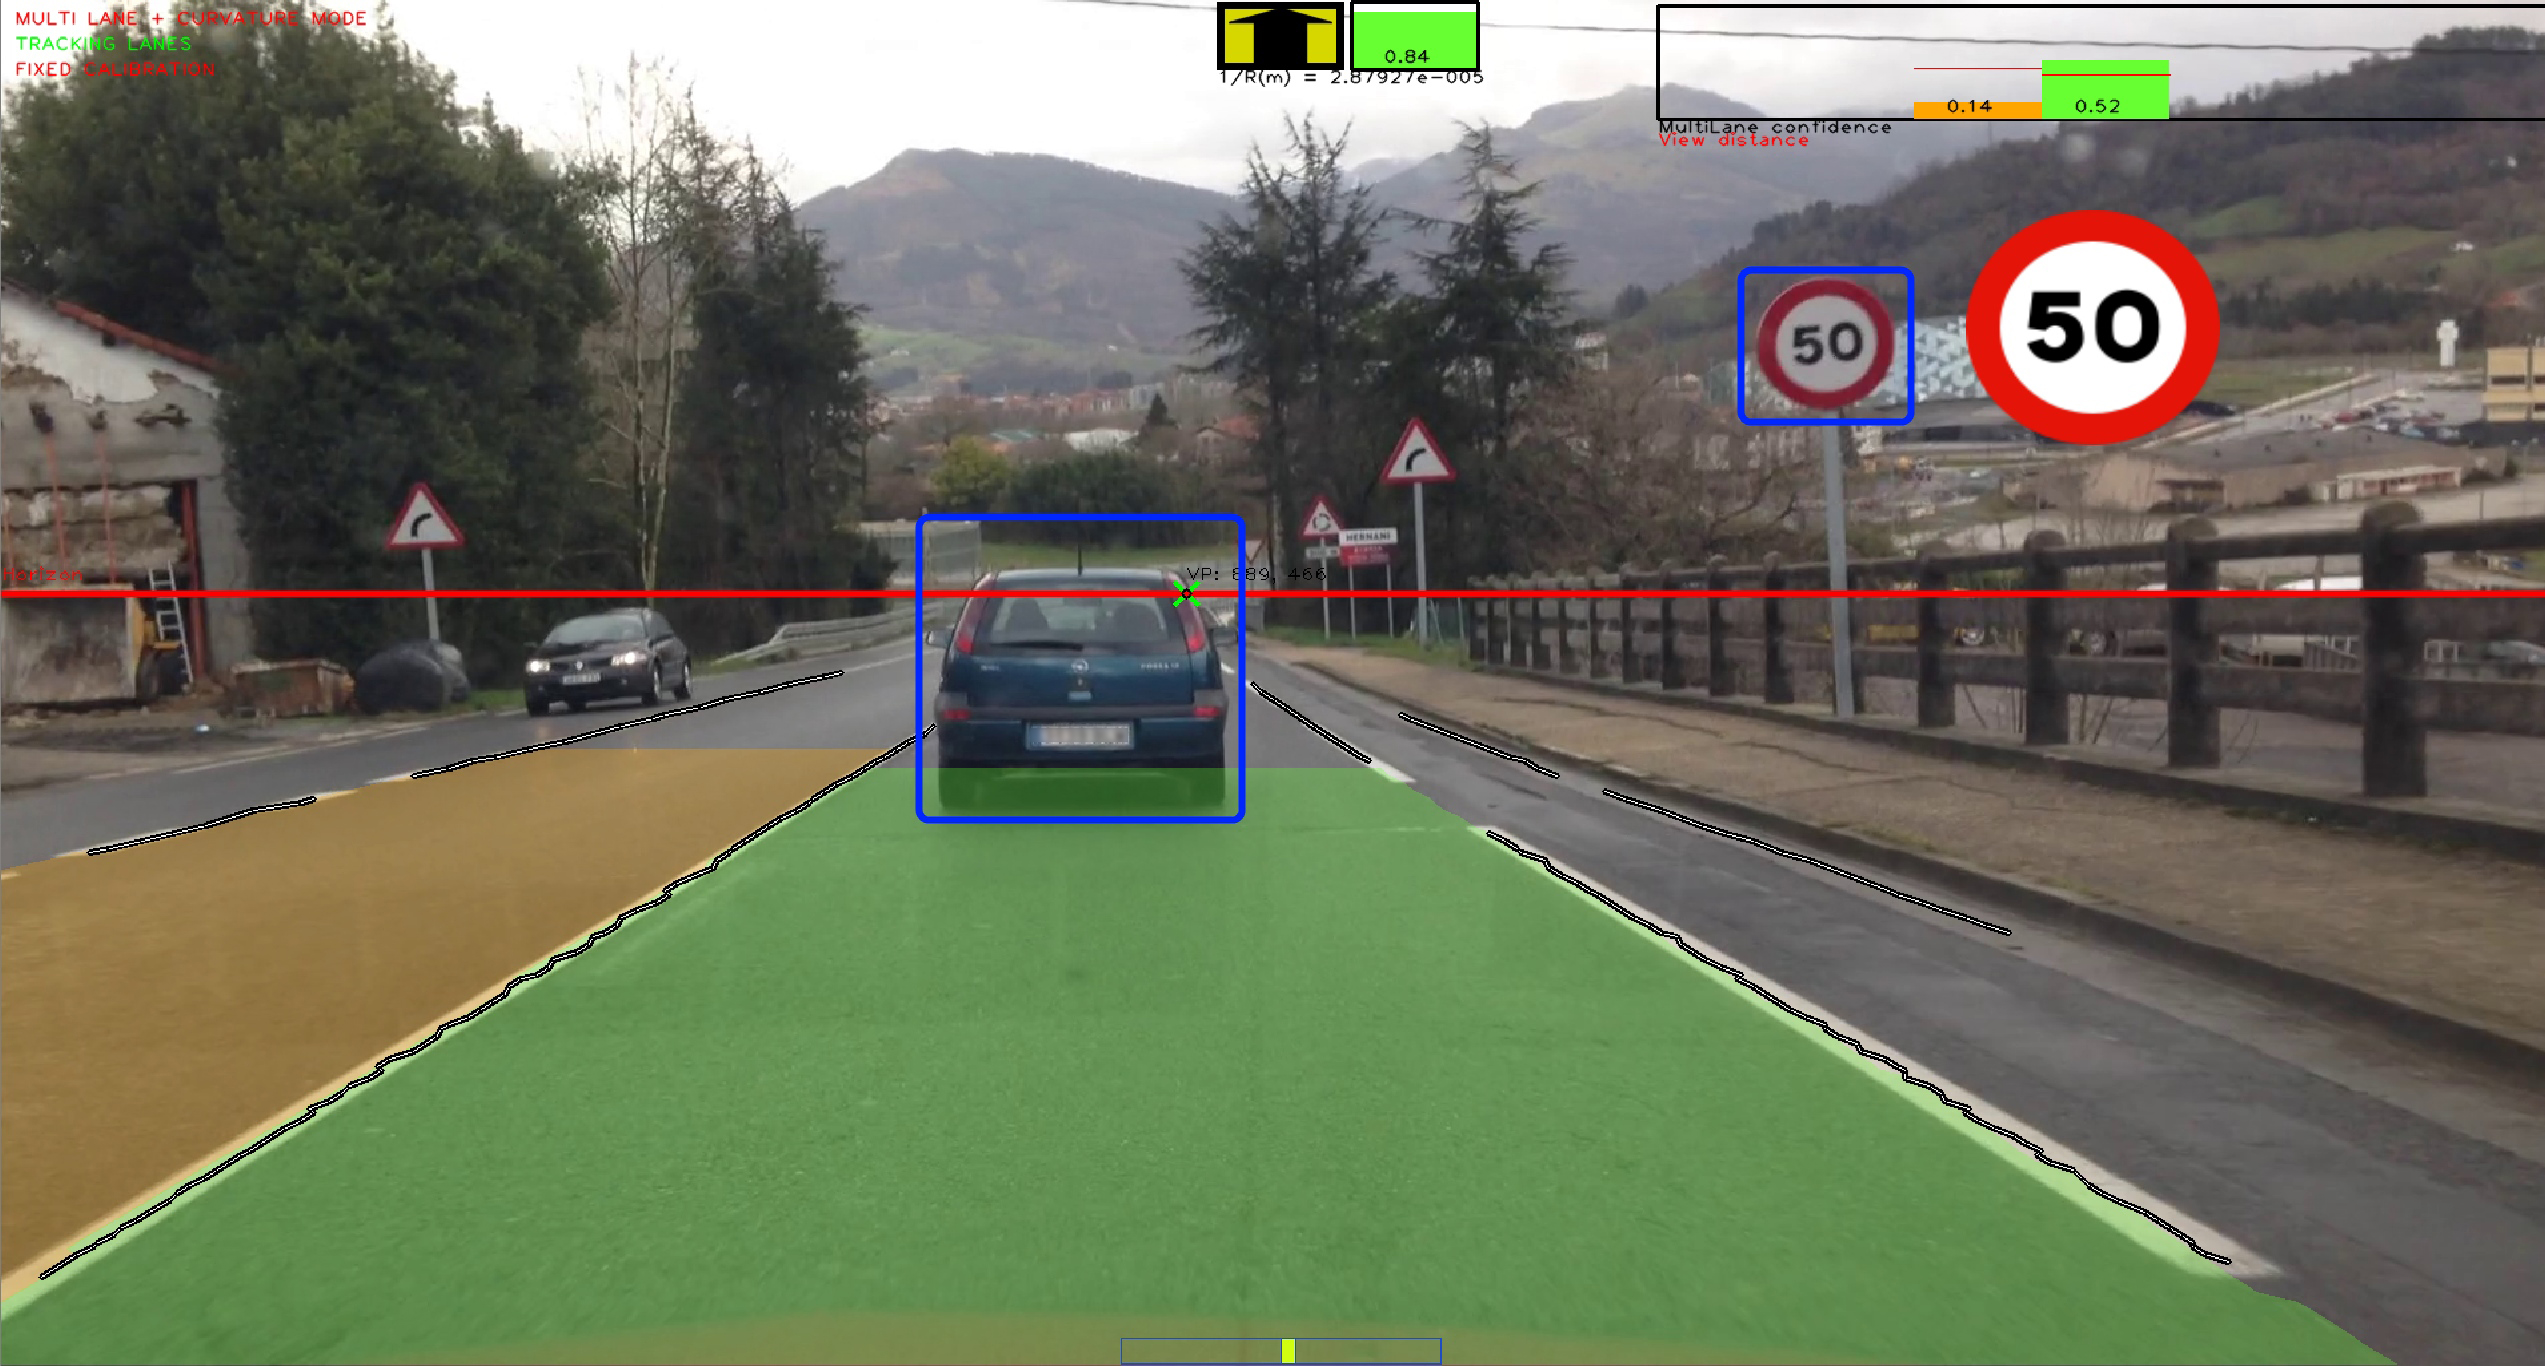 Satellite Navigation and Computer Vision technologies to guide drivers at lane level